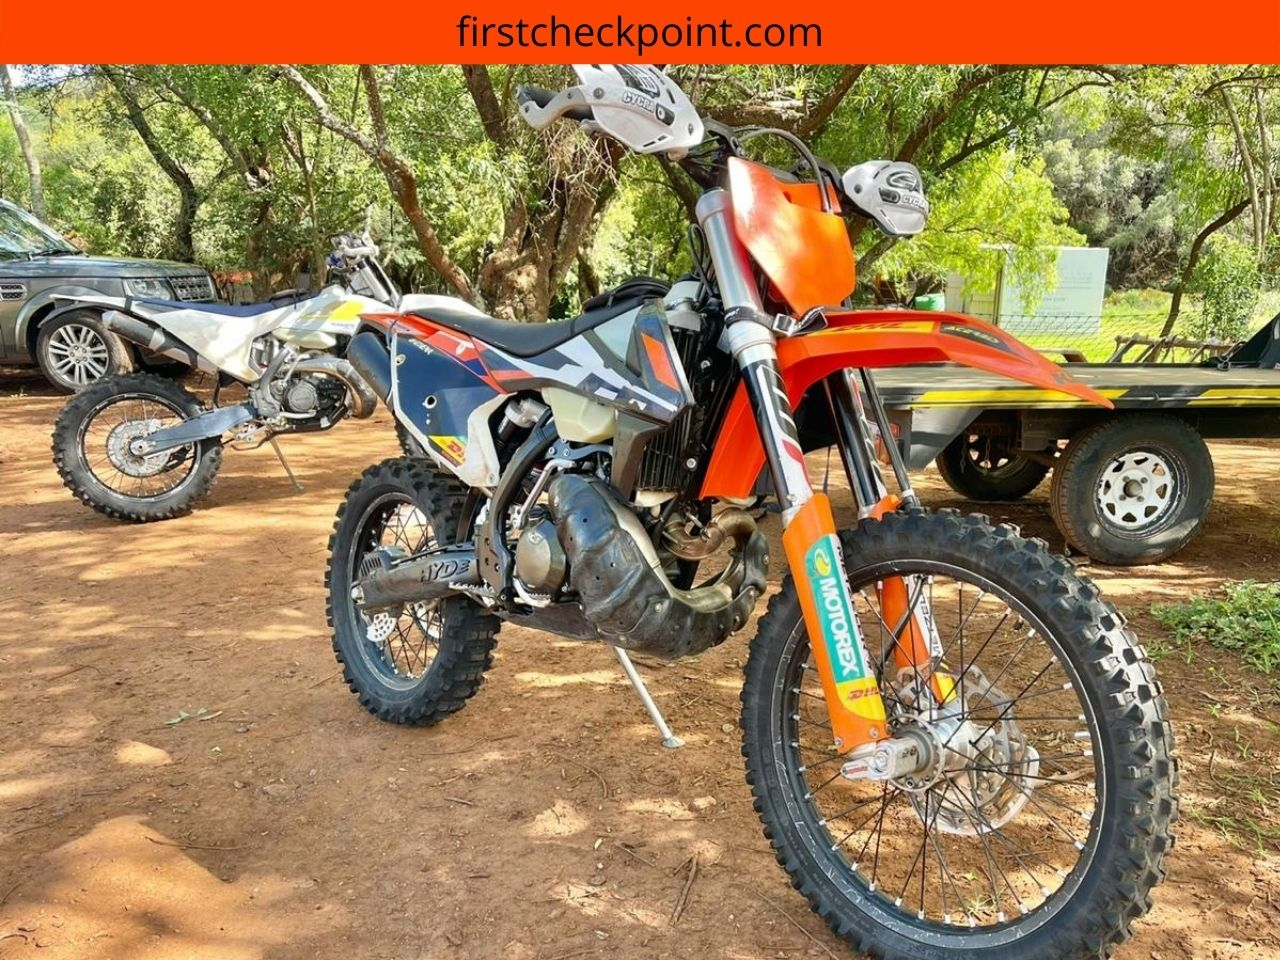 How to warm up a dirt bike engine